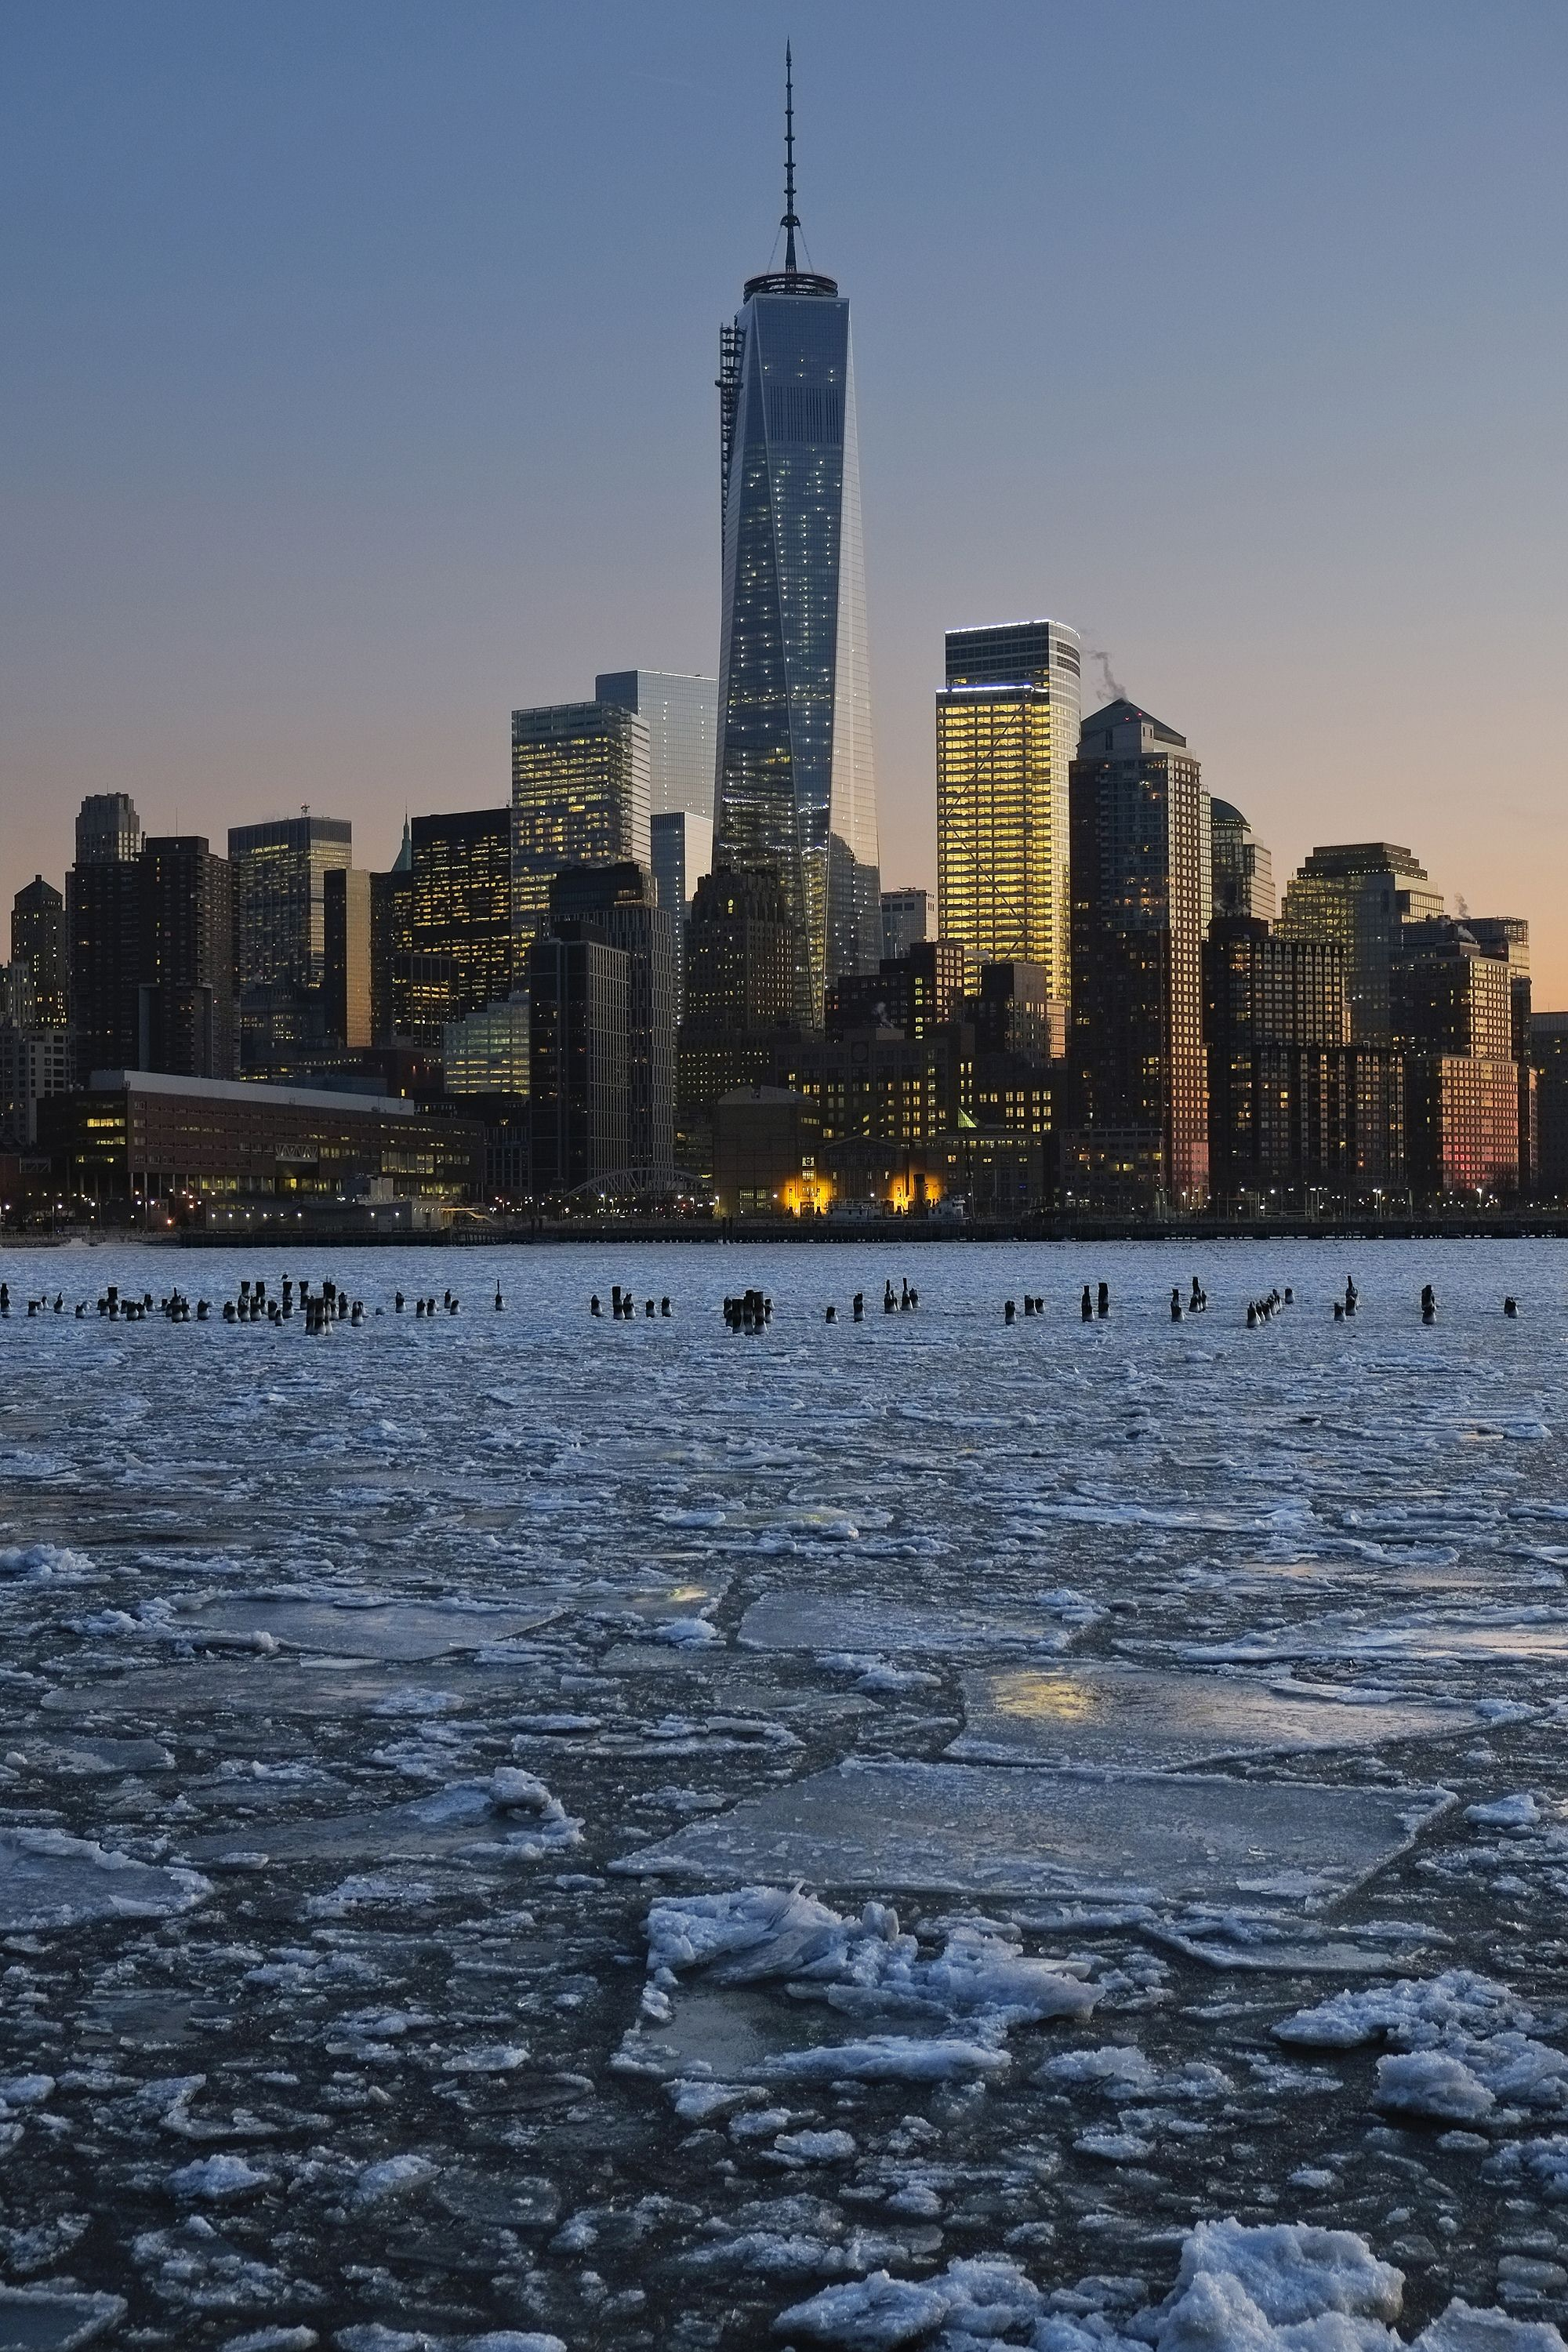 Ice floes fill the Hudson River as the Lower Manhattan skyline is seen during sunset on 9 January 2014 in New York City.A recent cold spell, caused by a polar vortex descending from the Arctic, caused the floes to form in the Hudson.